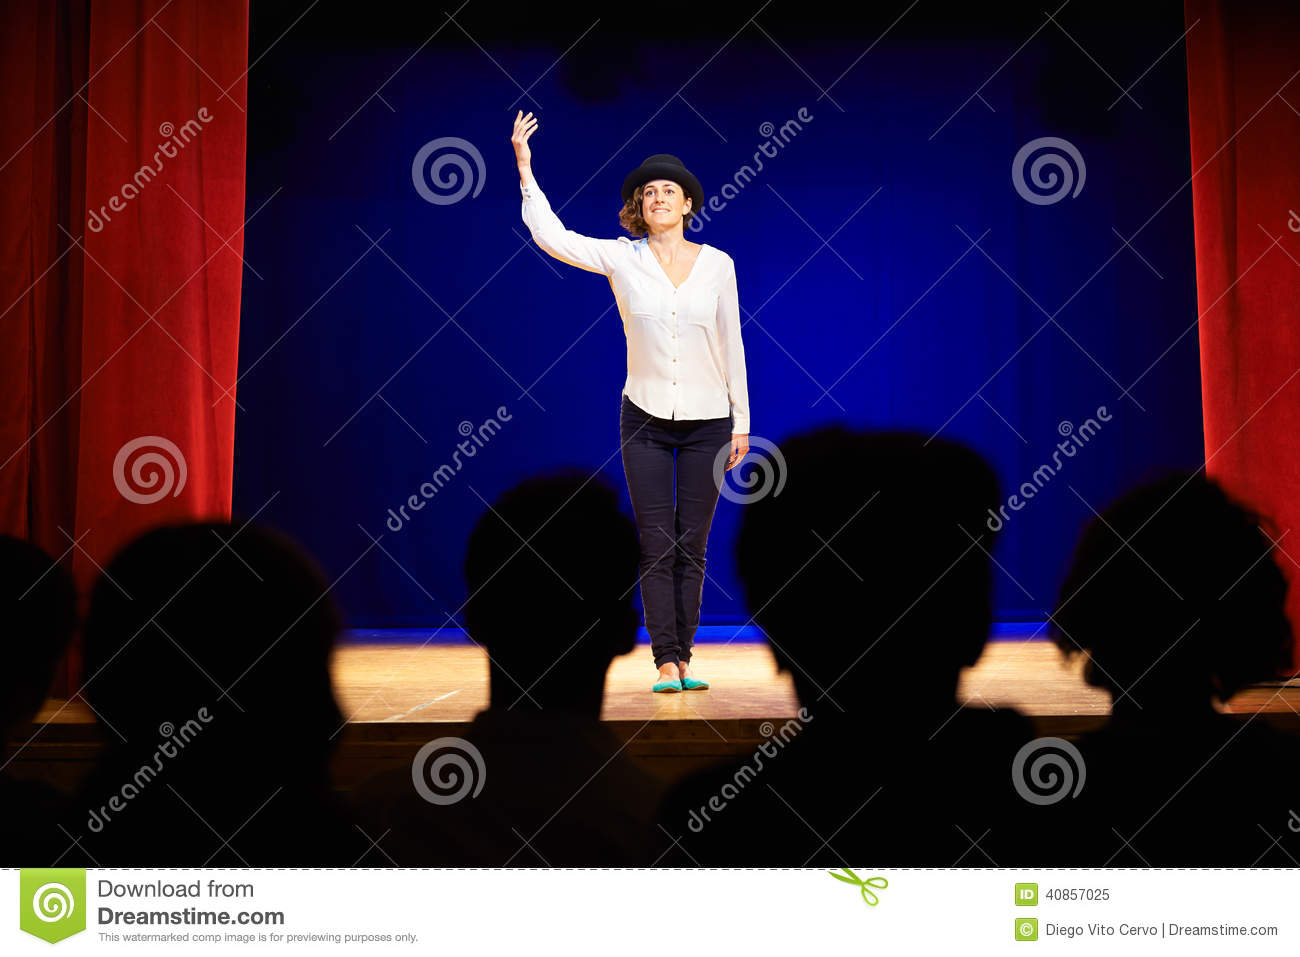 Arts and entertainment in theatre with actress on stage acting in play